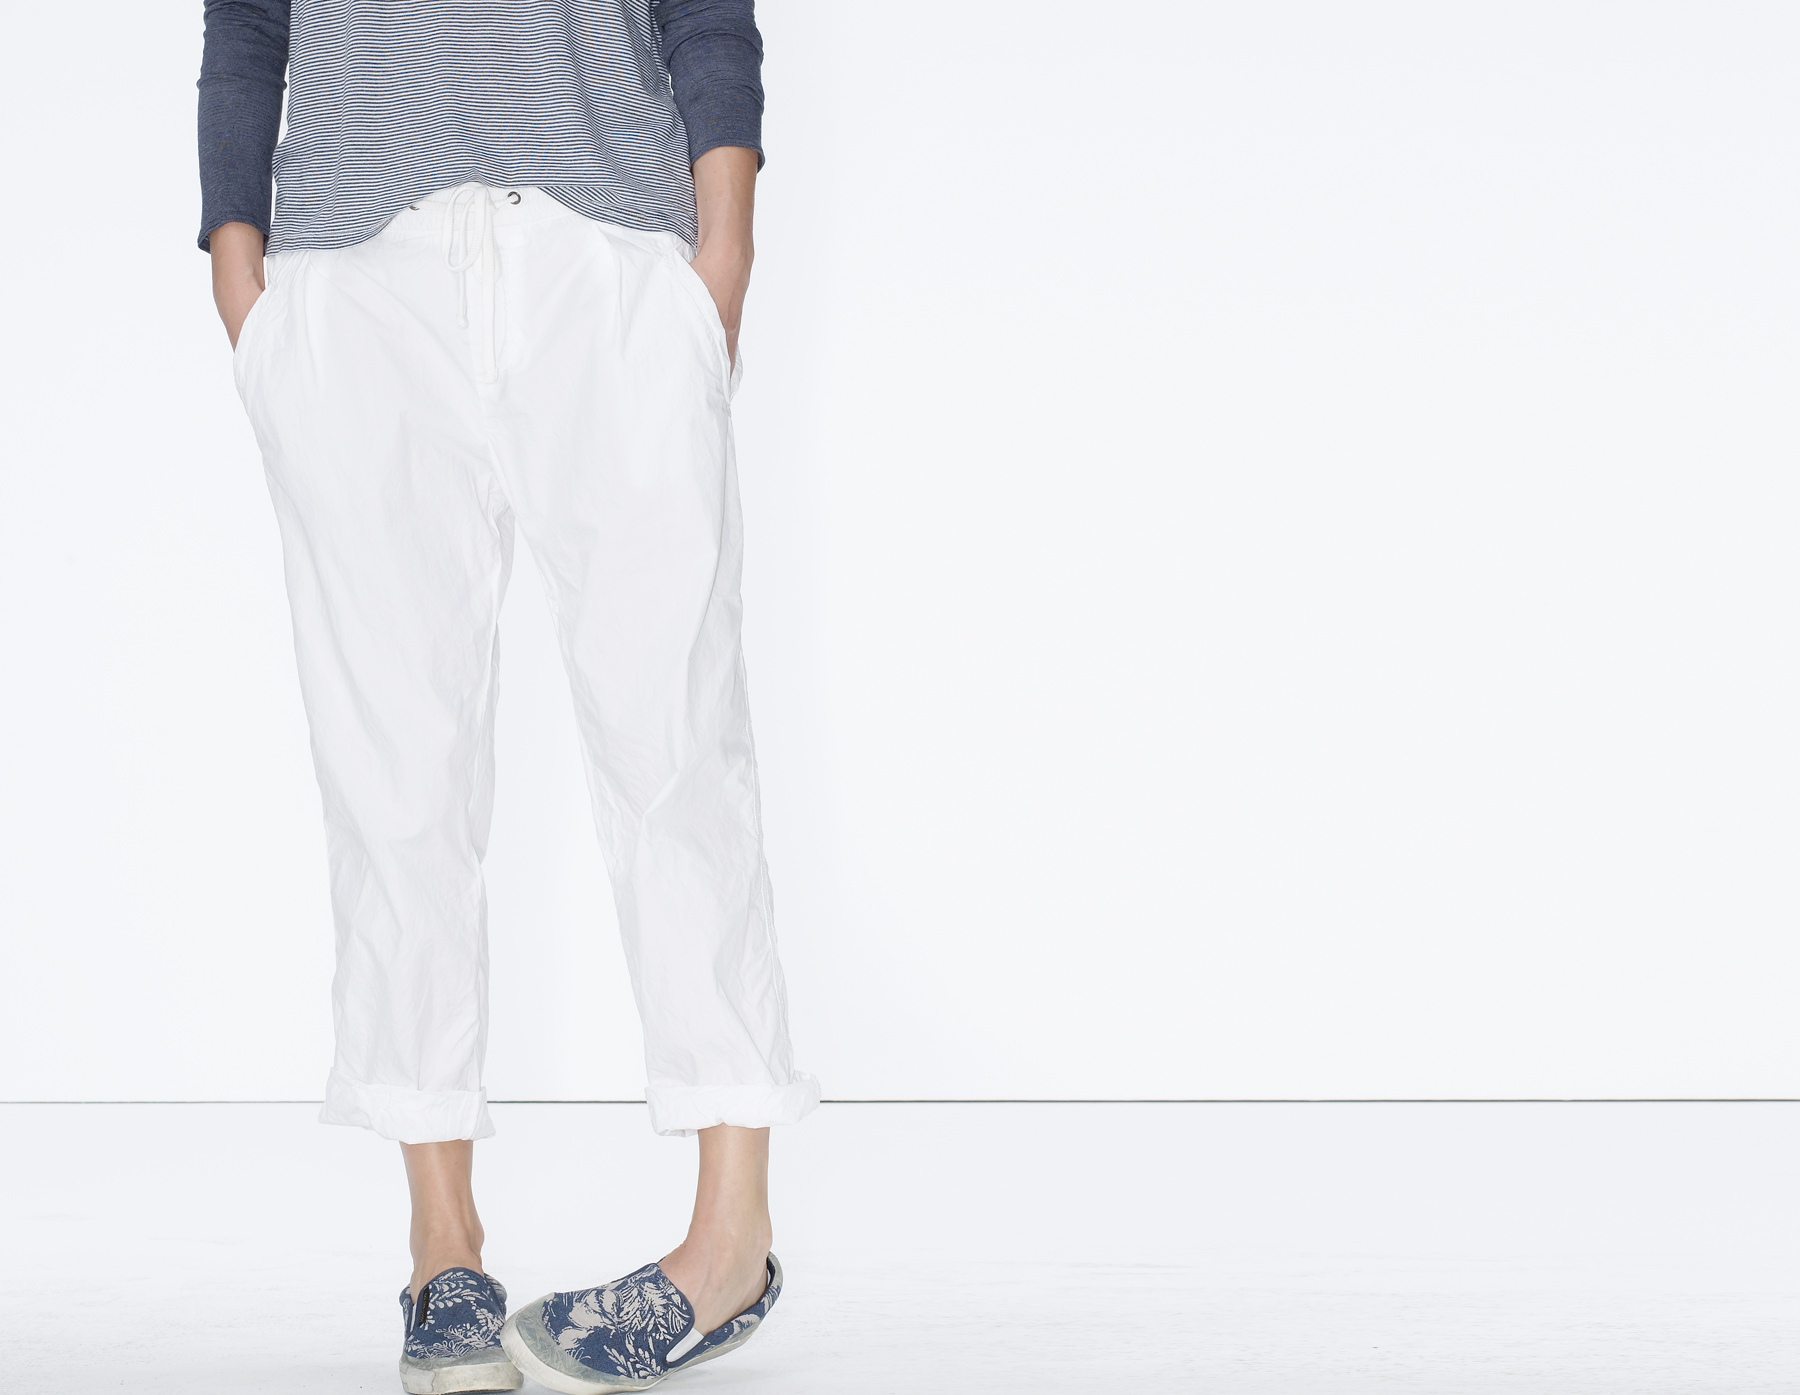 Find great deals on eBay for white parachute pants. Shop with confidence.